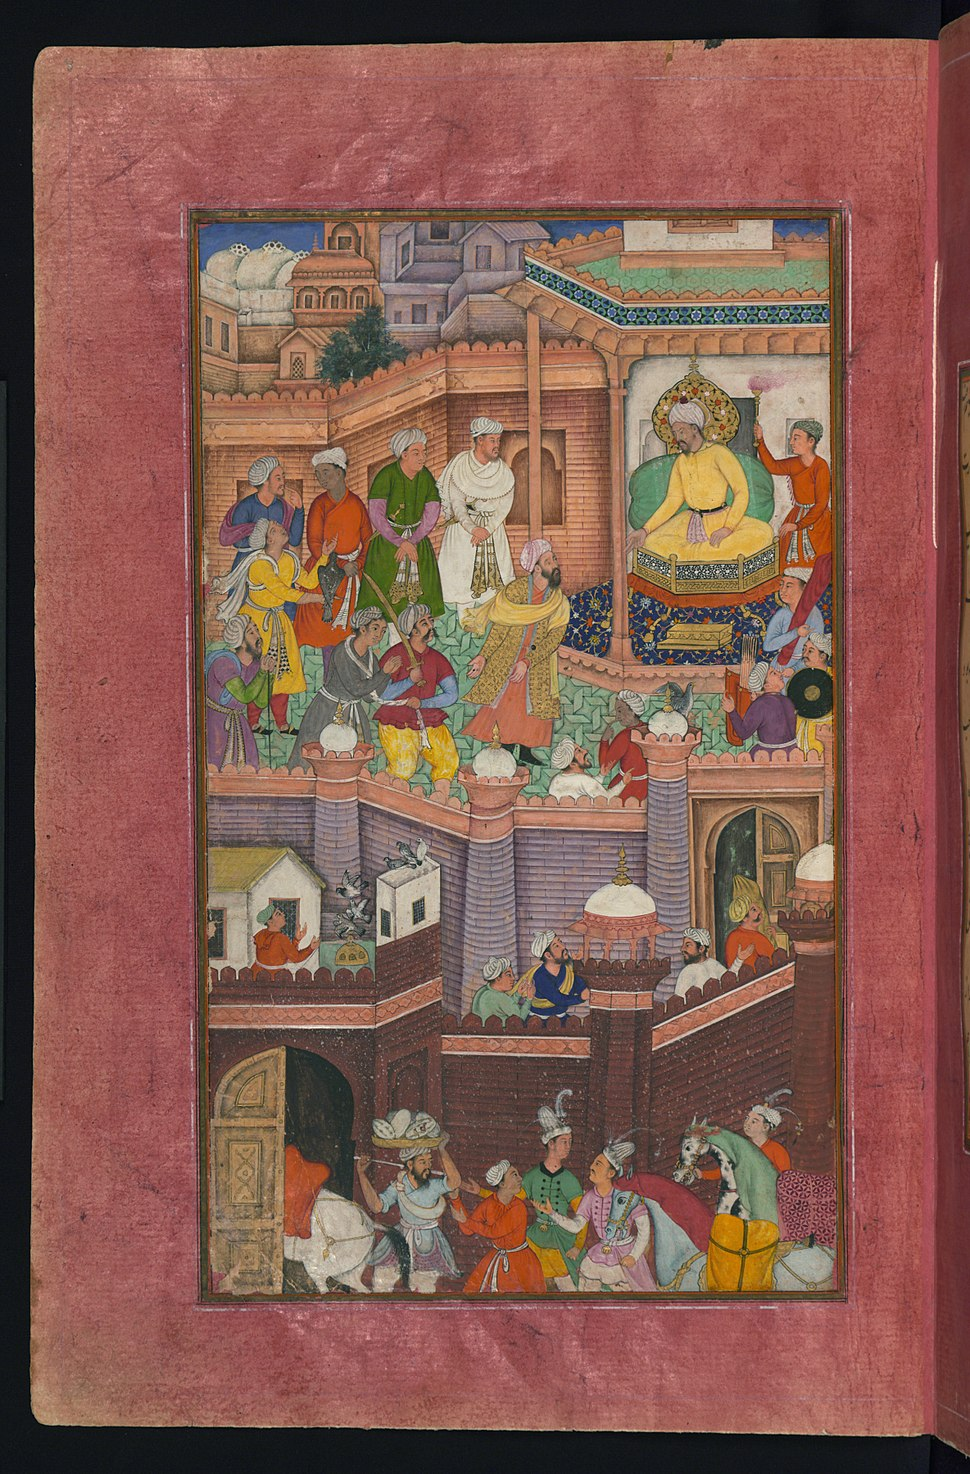 Muḥammad Ḥusaym Mīrzā, a relative of Babur, in spite of his treachery, is being released and send to Khurāsān